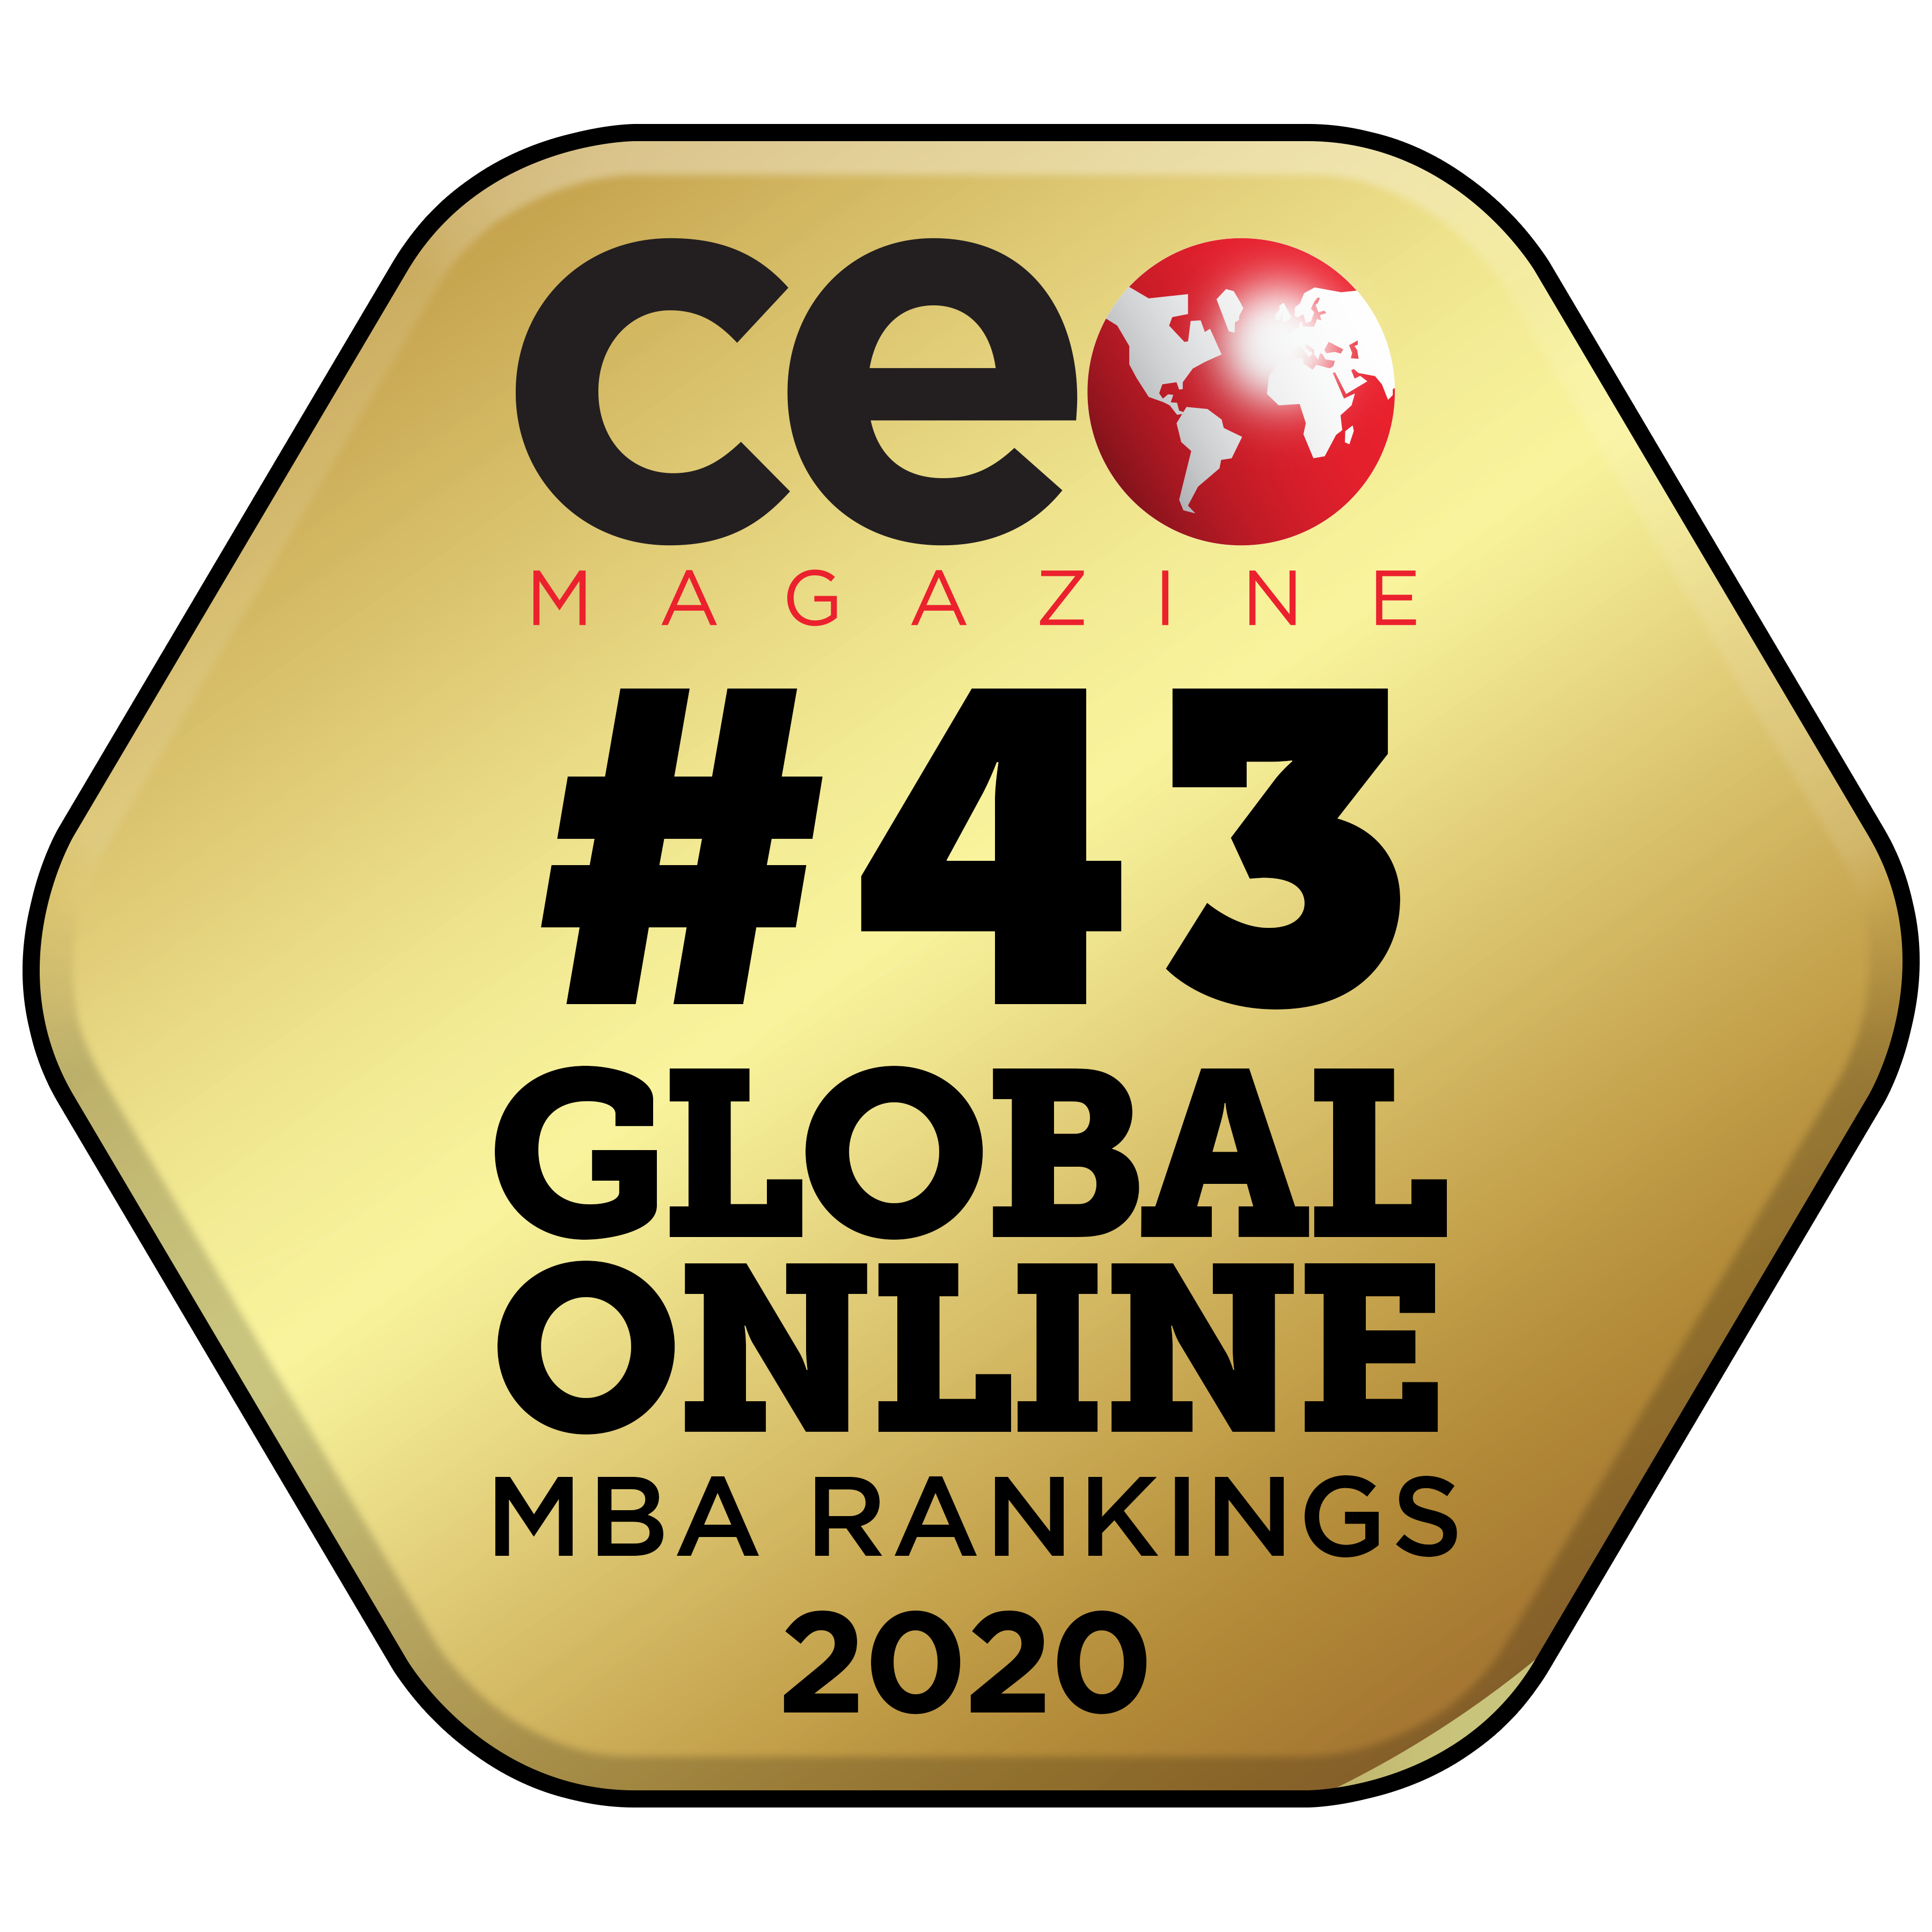 CEO Magazine 43 ranked